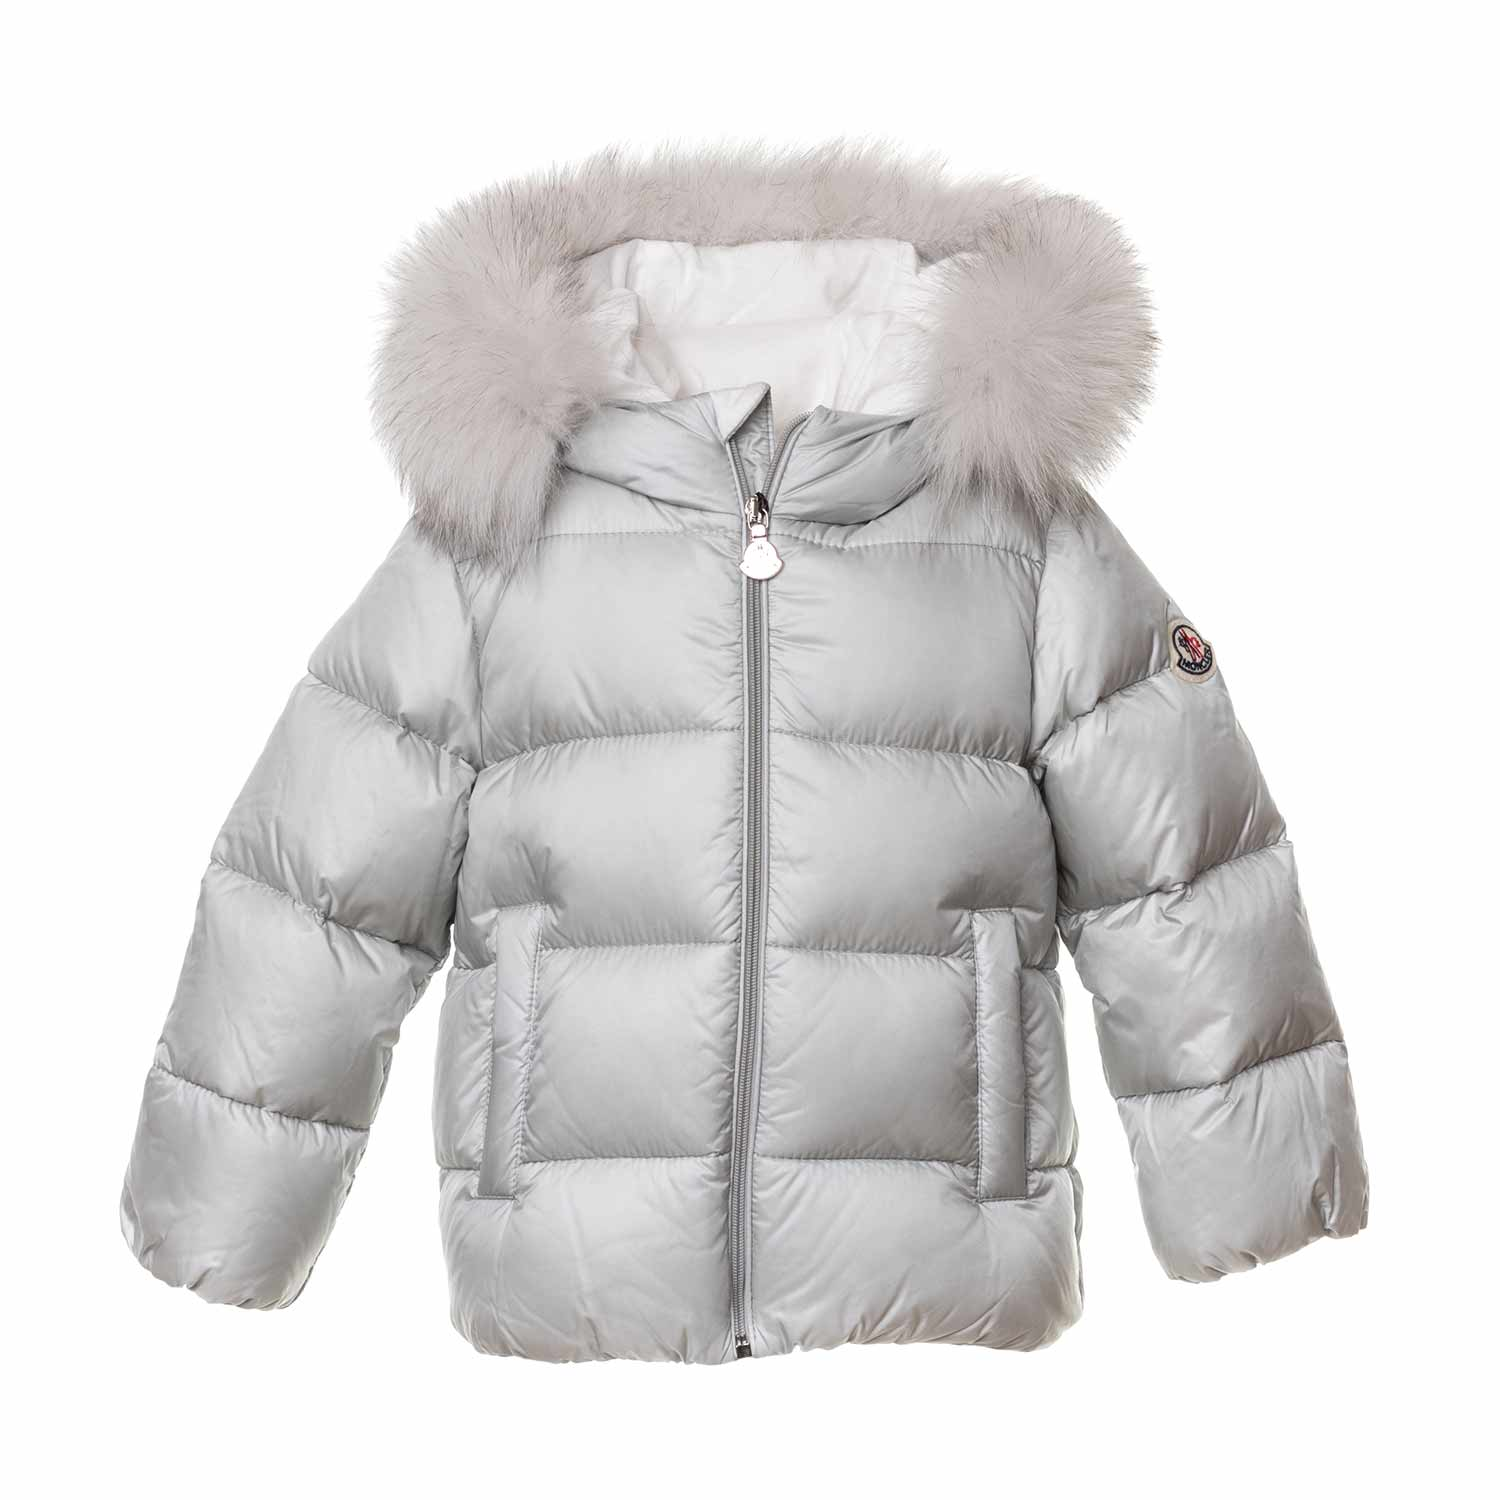 061ec06064 Little Girl White Teiki Coat